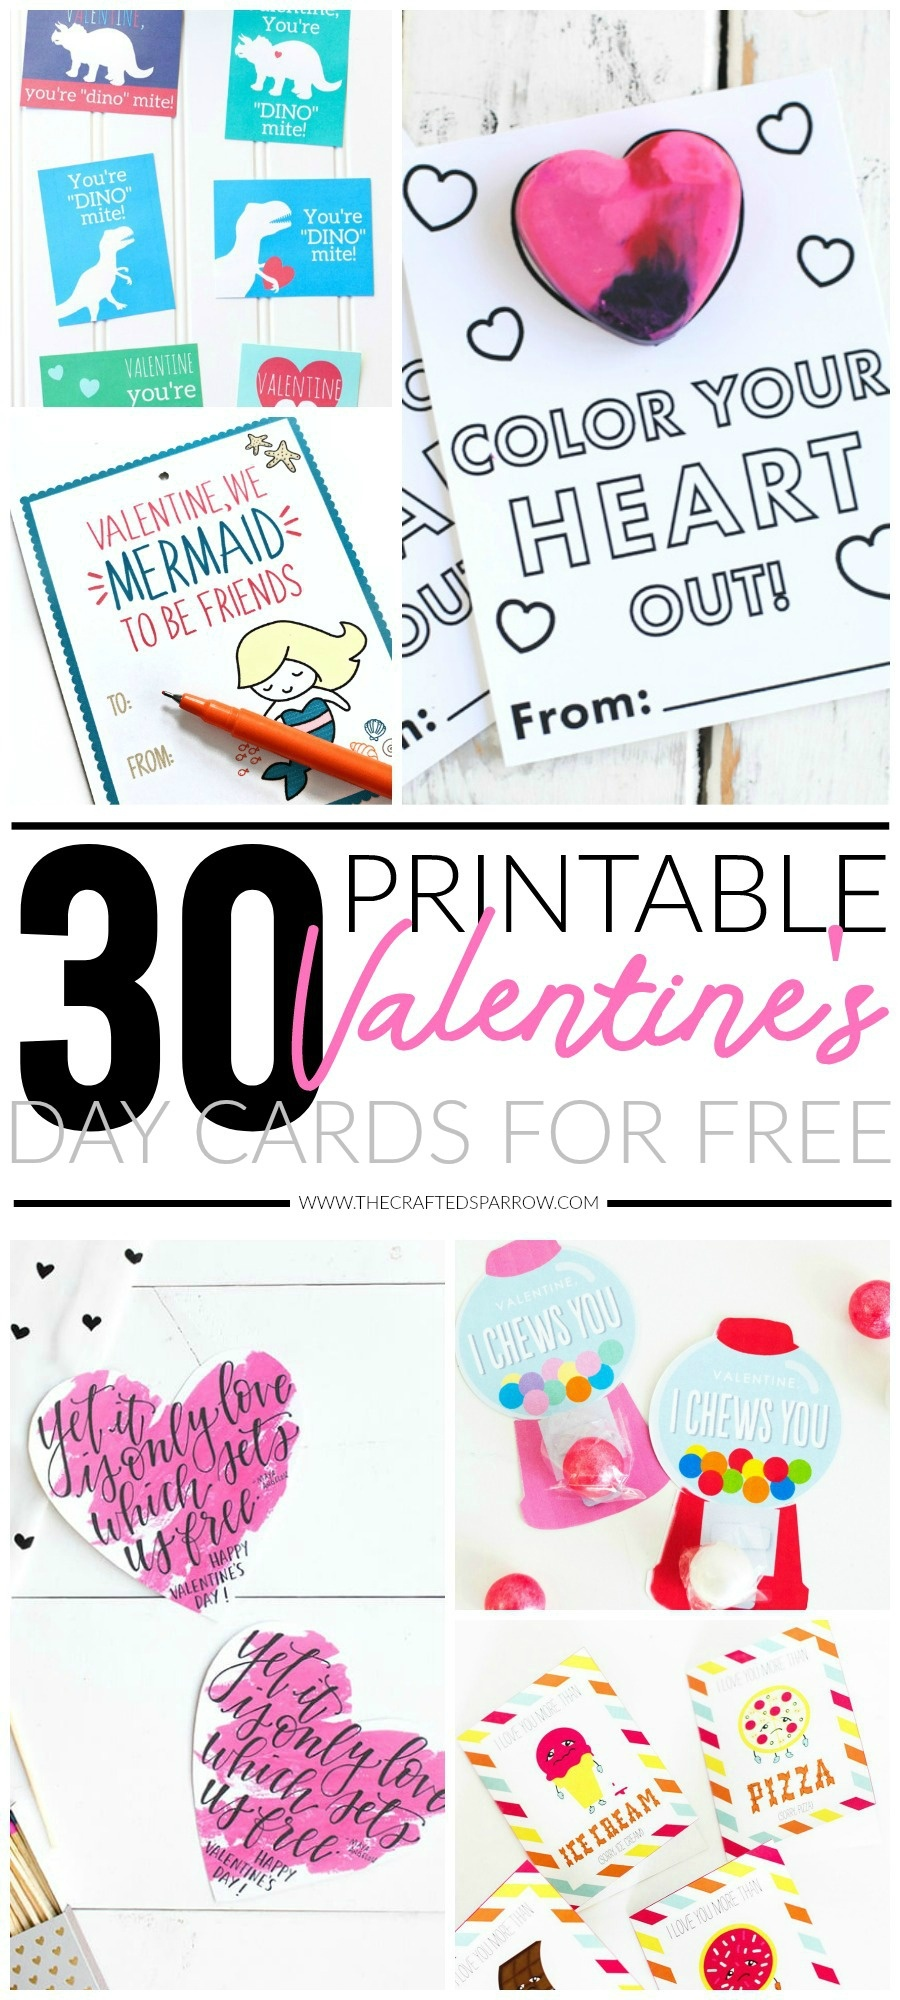 30 Valentines Day Printable Cards - Free Printable Valentines Day Cards For Mom And Dad